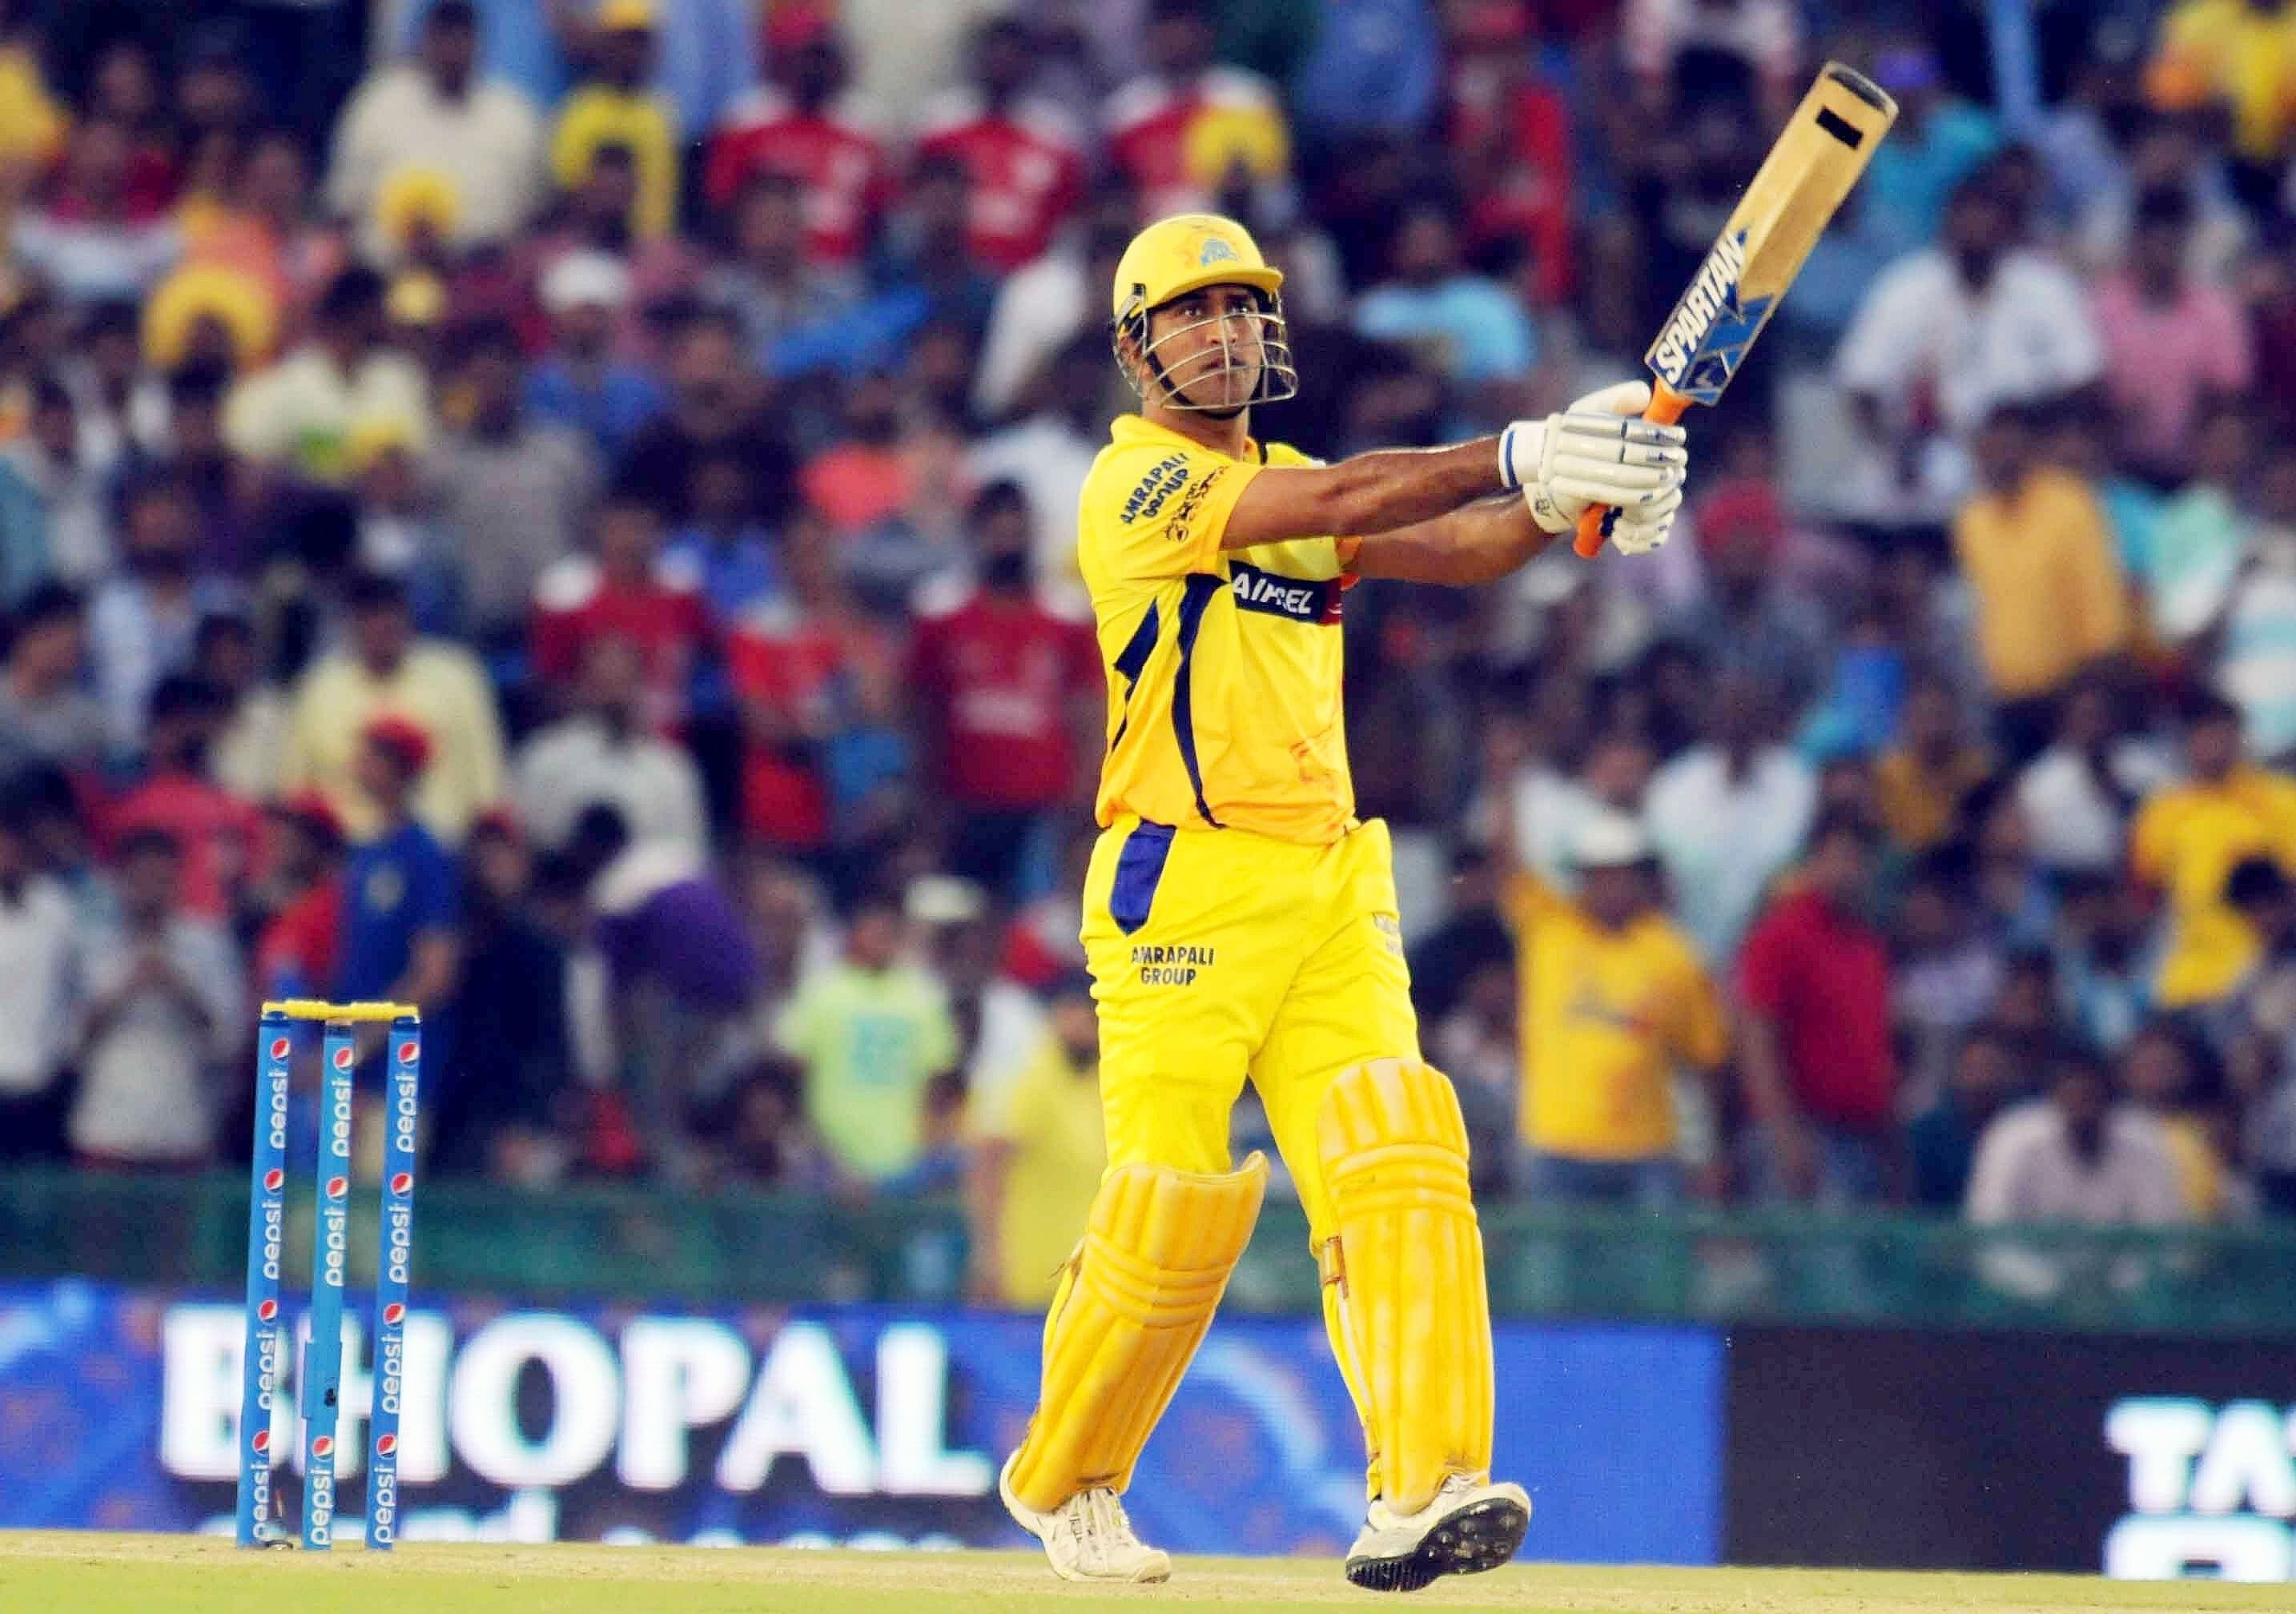 MS Dhoni In CSK IPL Match Wallpaper